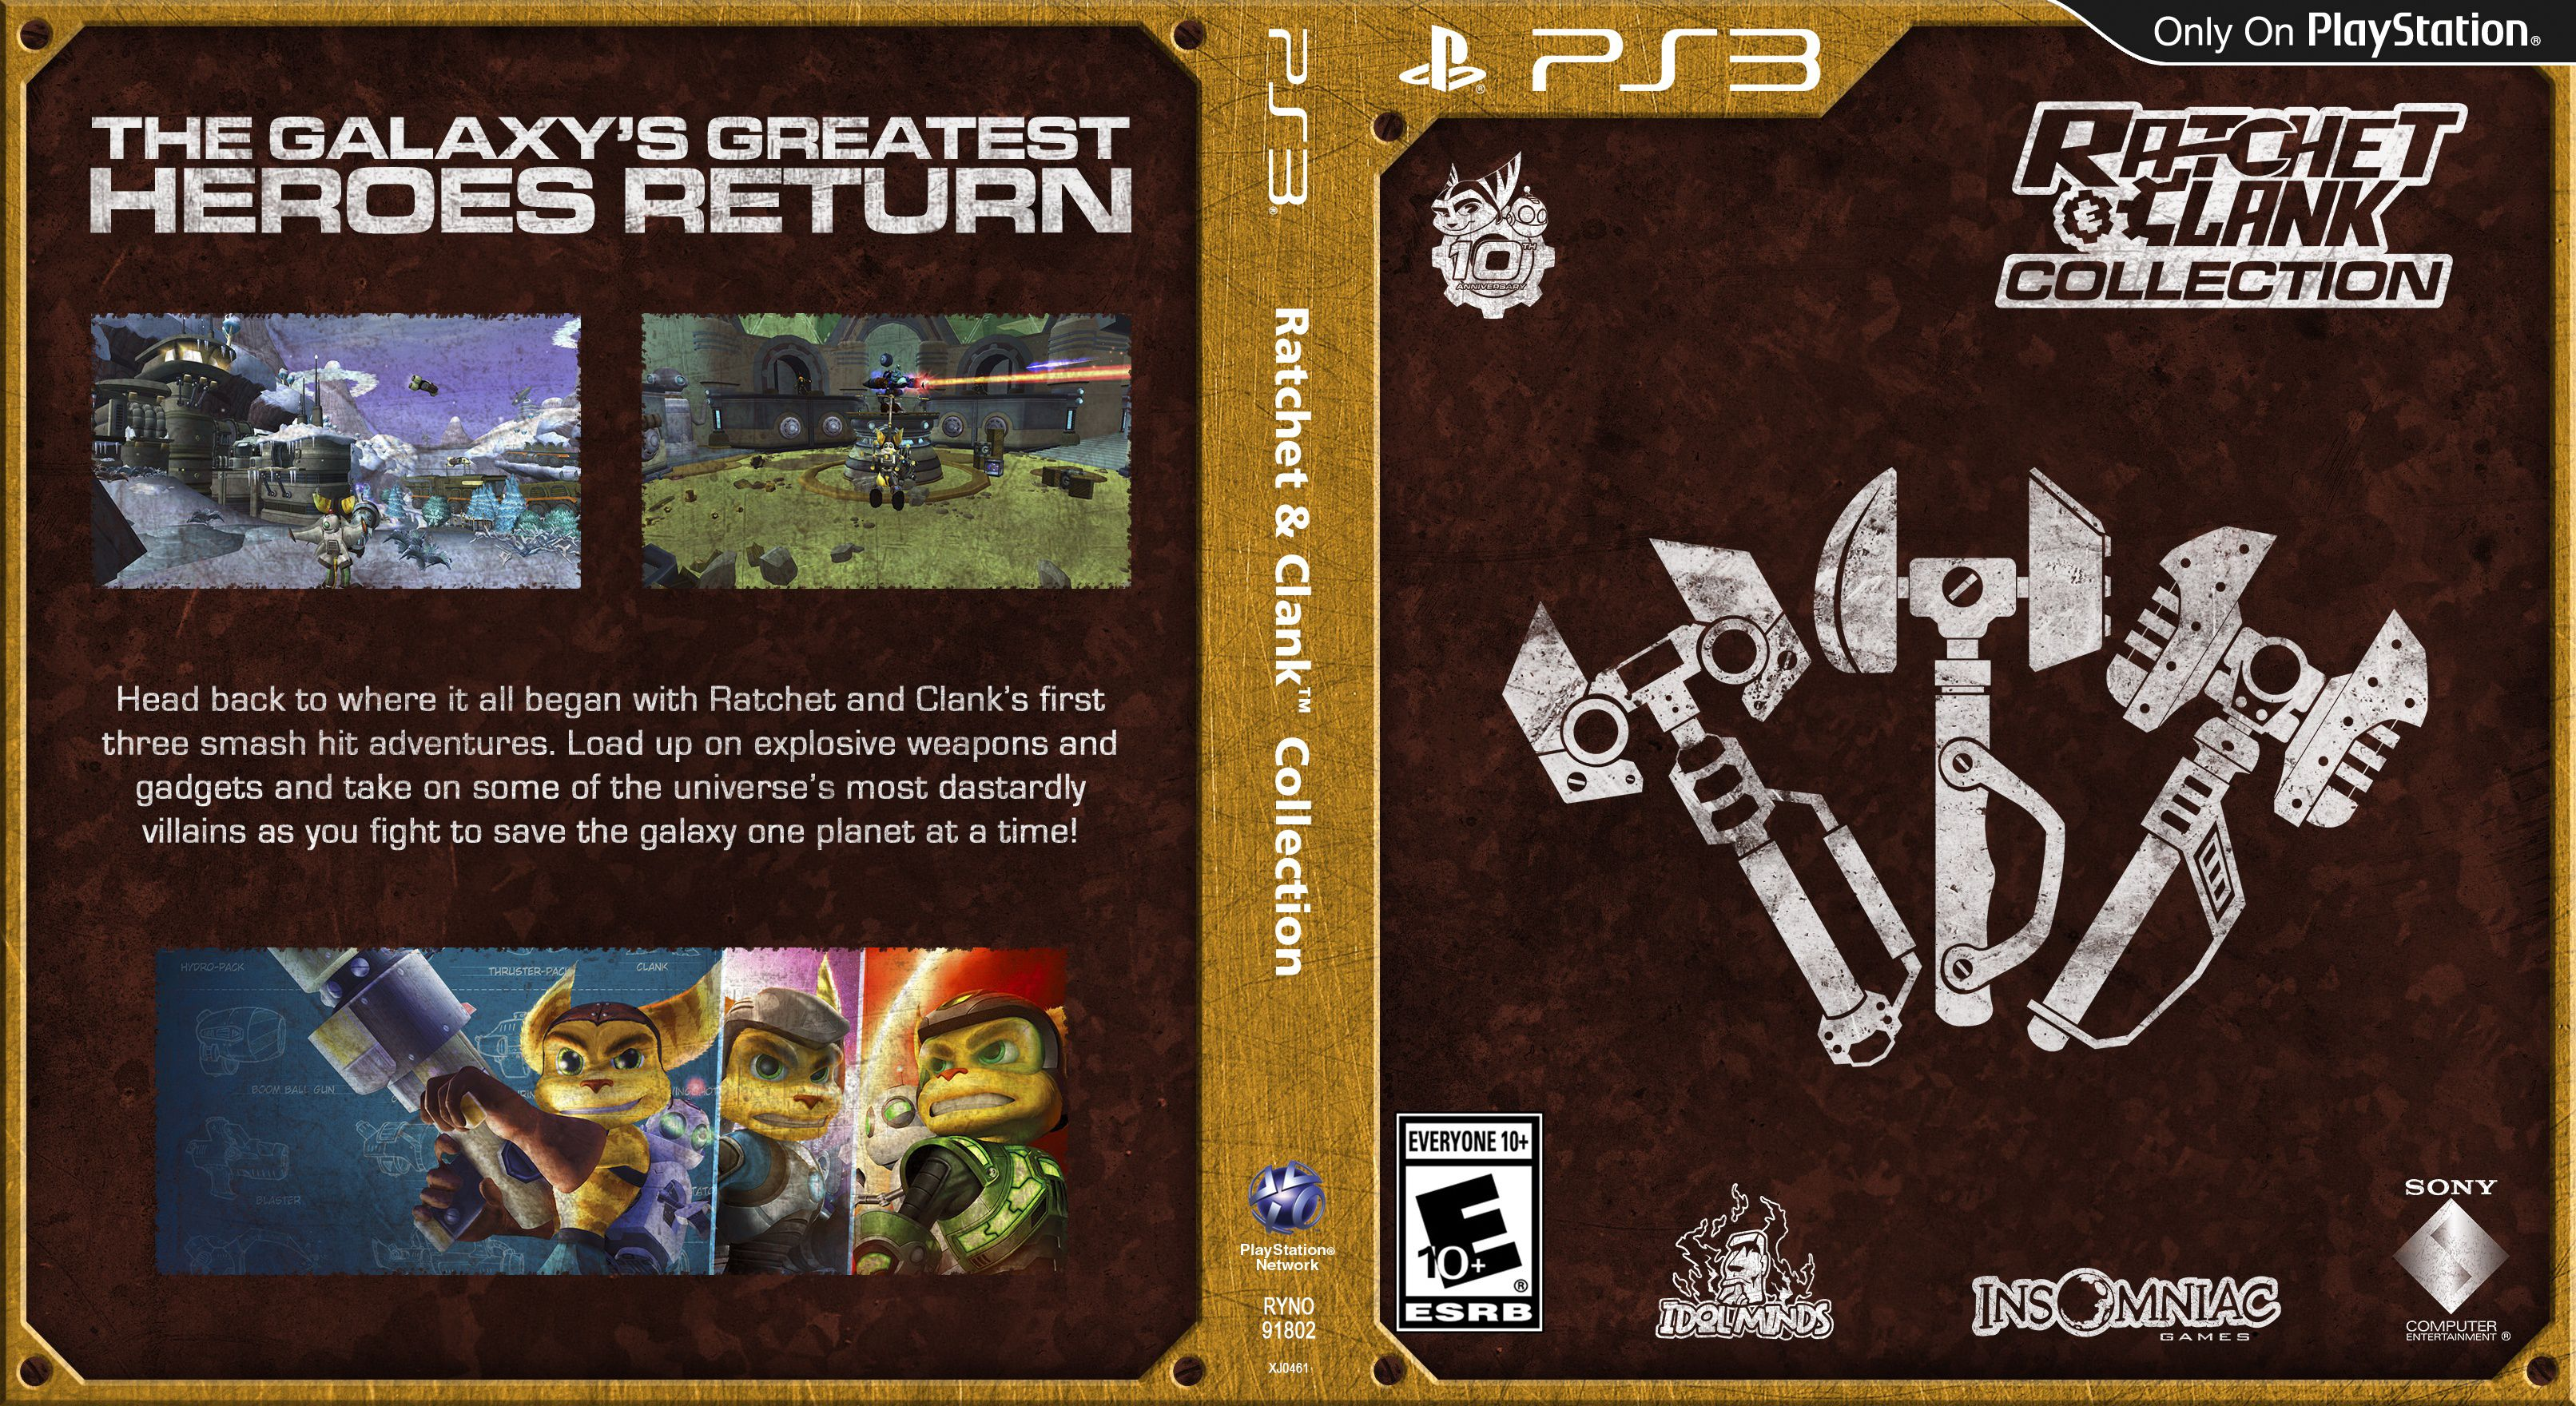 Capa Ratchet & Clank Collection PS3